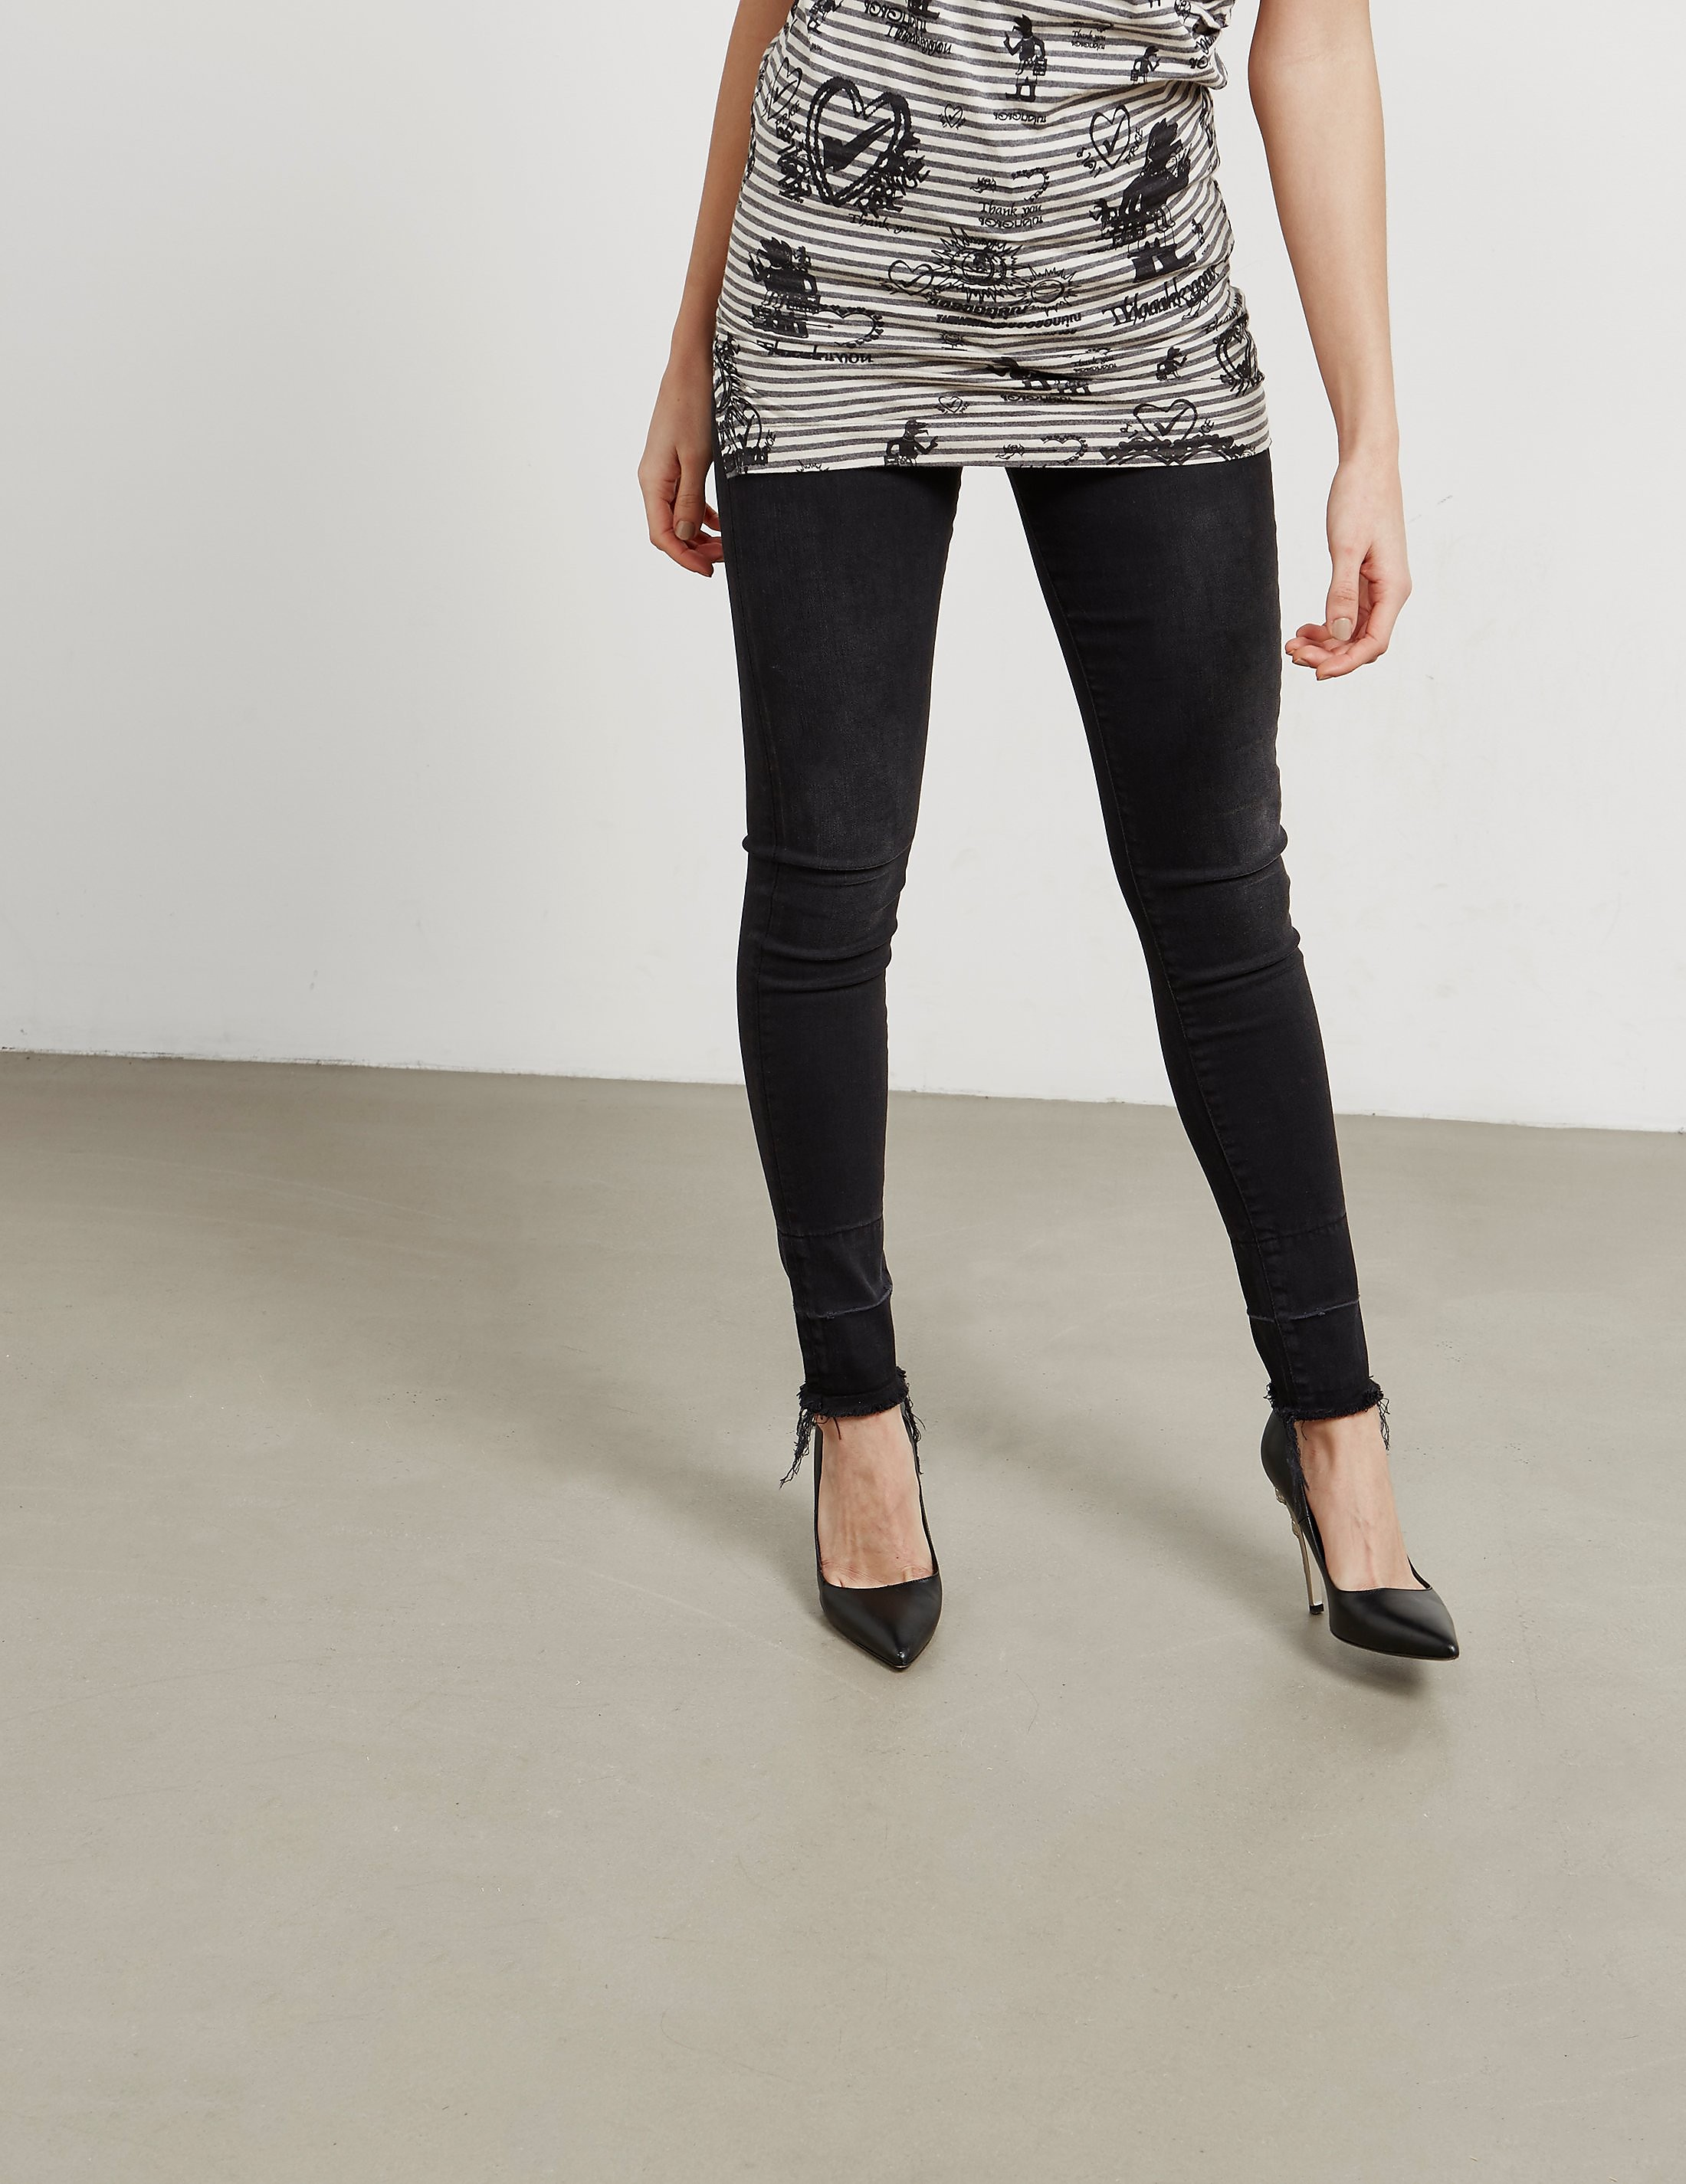 Vivienne Westwood Anglomania Super Skinny Jeans